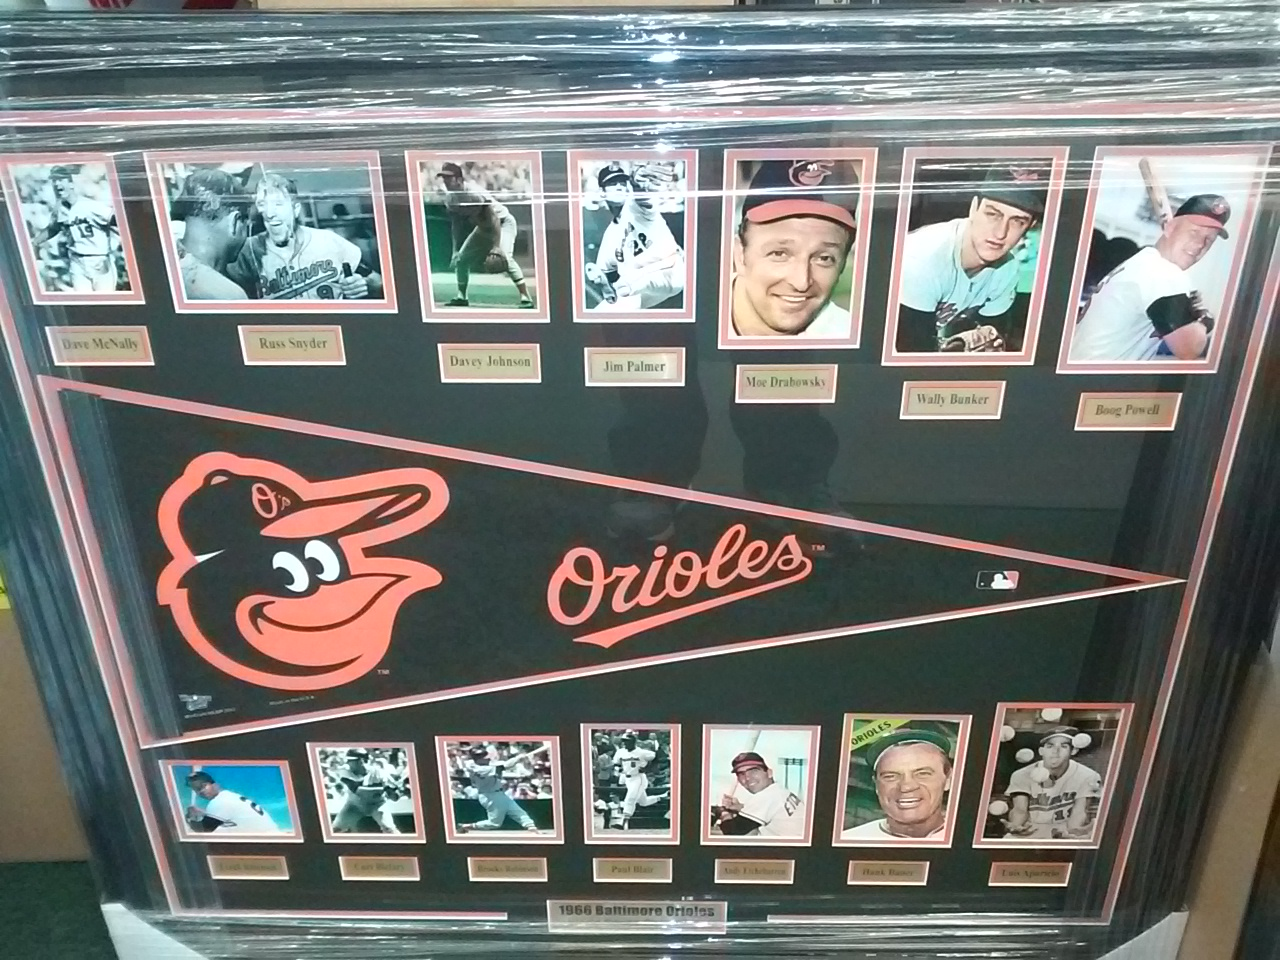 1966 Orioles Pennant Collage